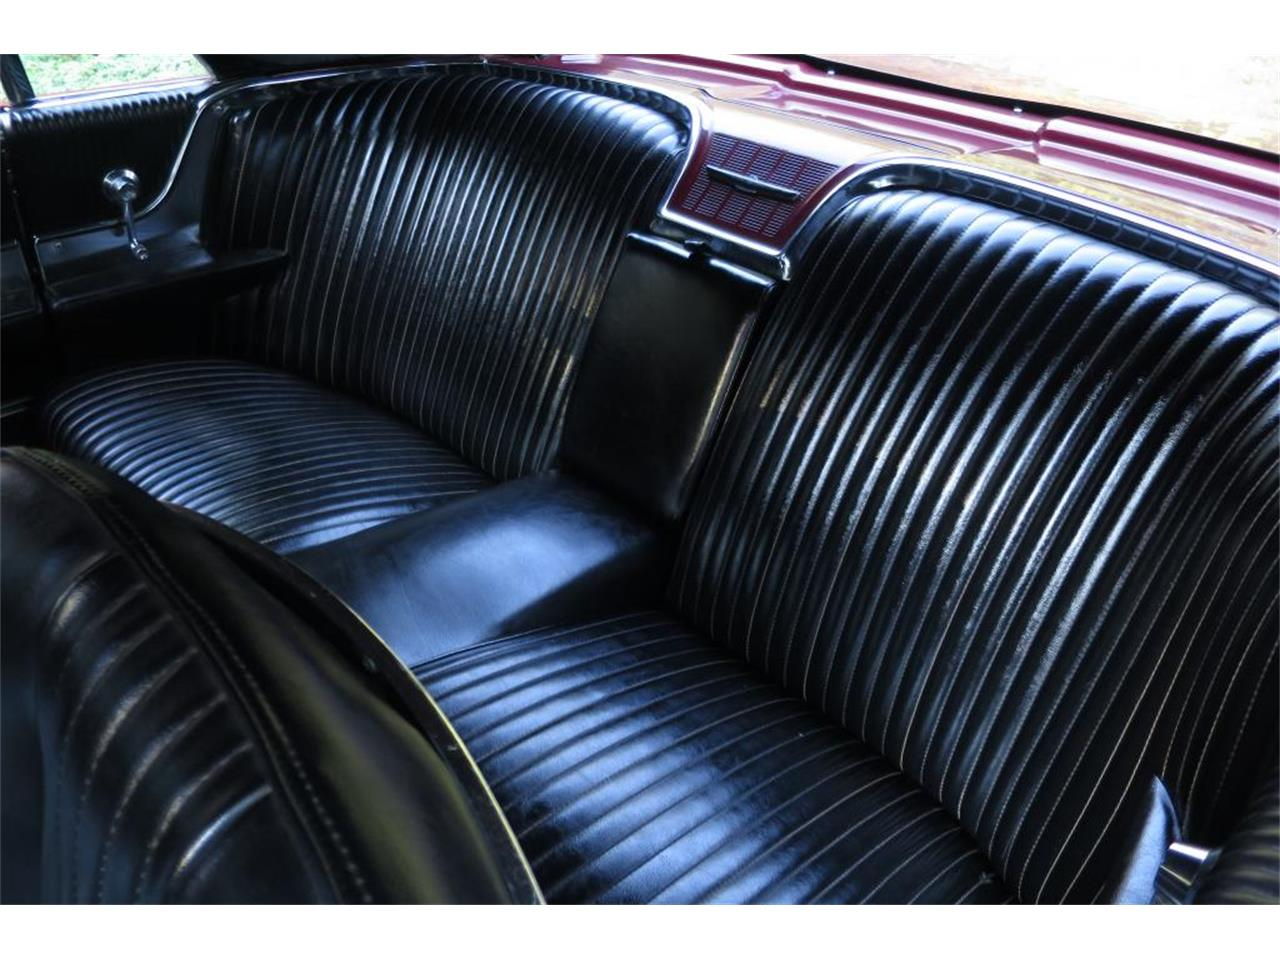 Large Picture of Classic '64 Thunderbird located in Milford City Connecticut Auction Vehicle Offered by Napoli Classics - LHHL